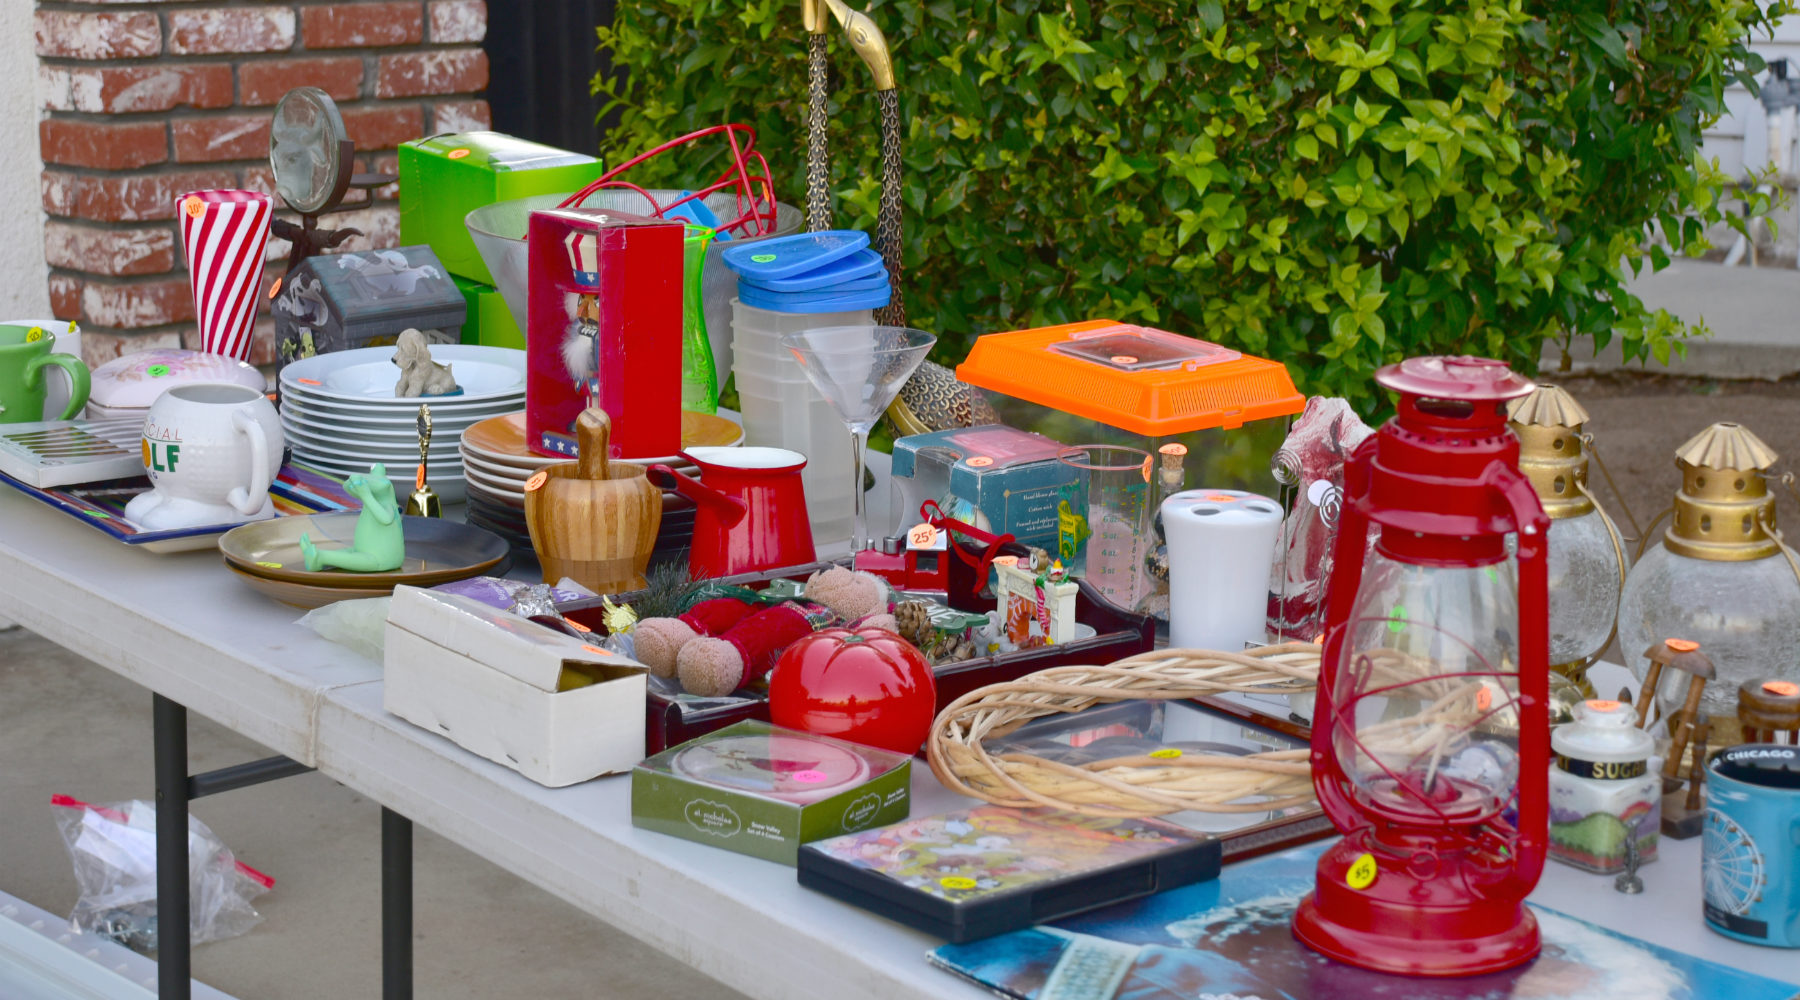 Garage sale table with dishes and glasses